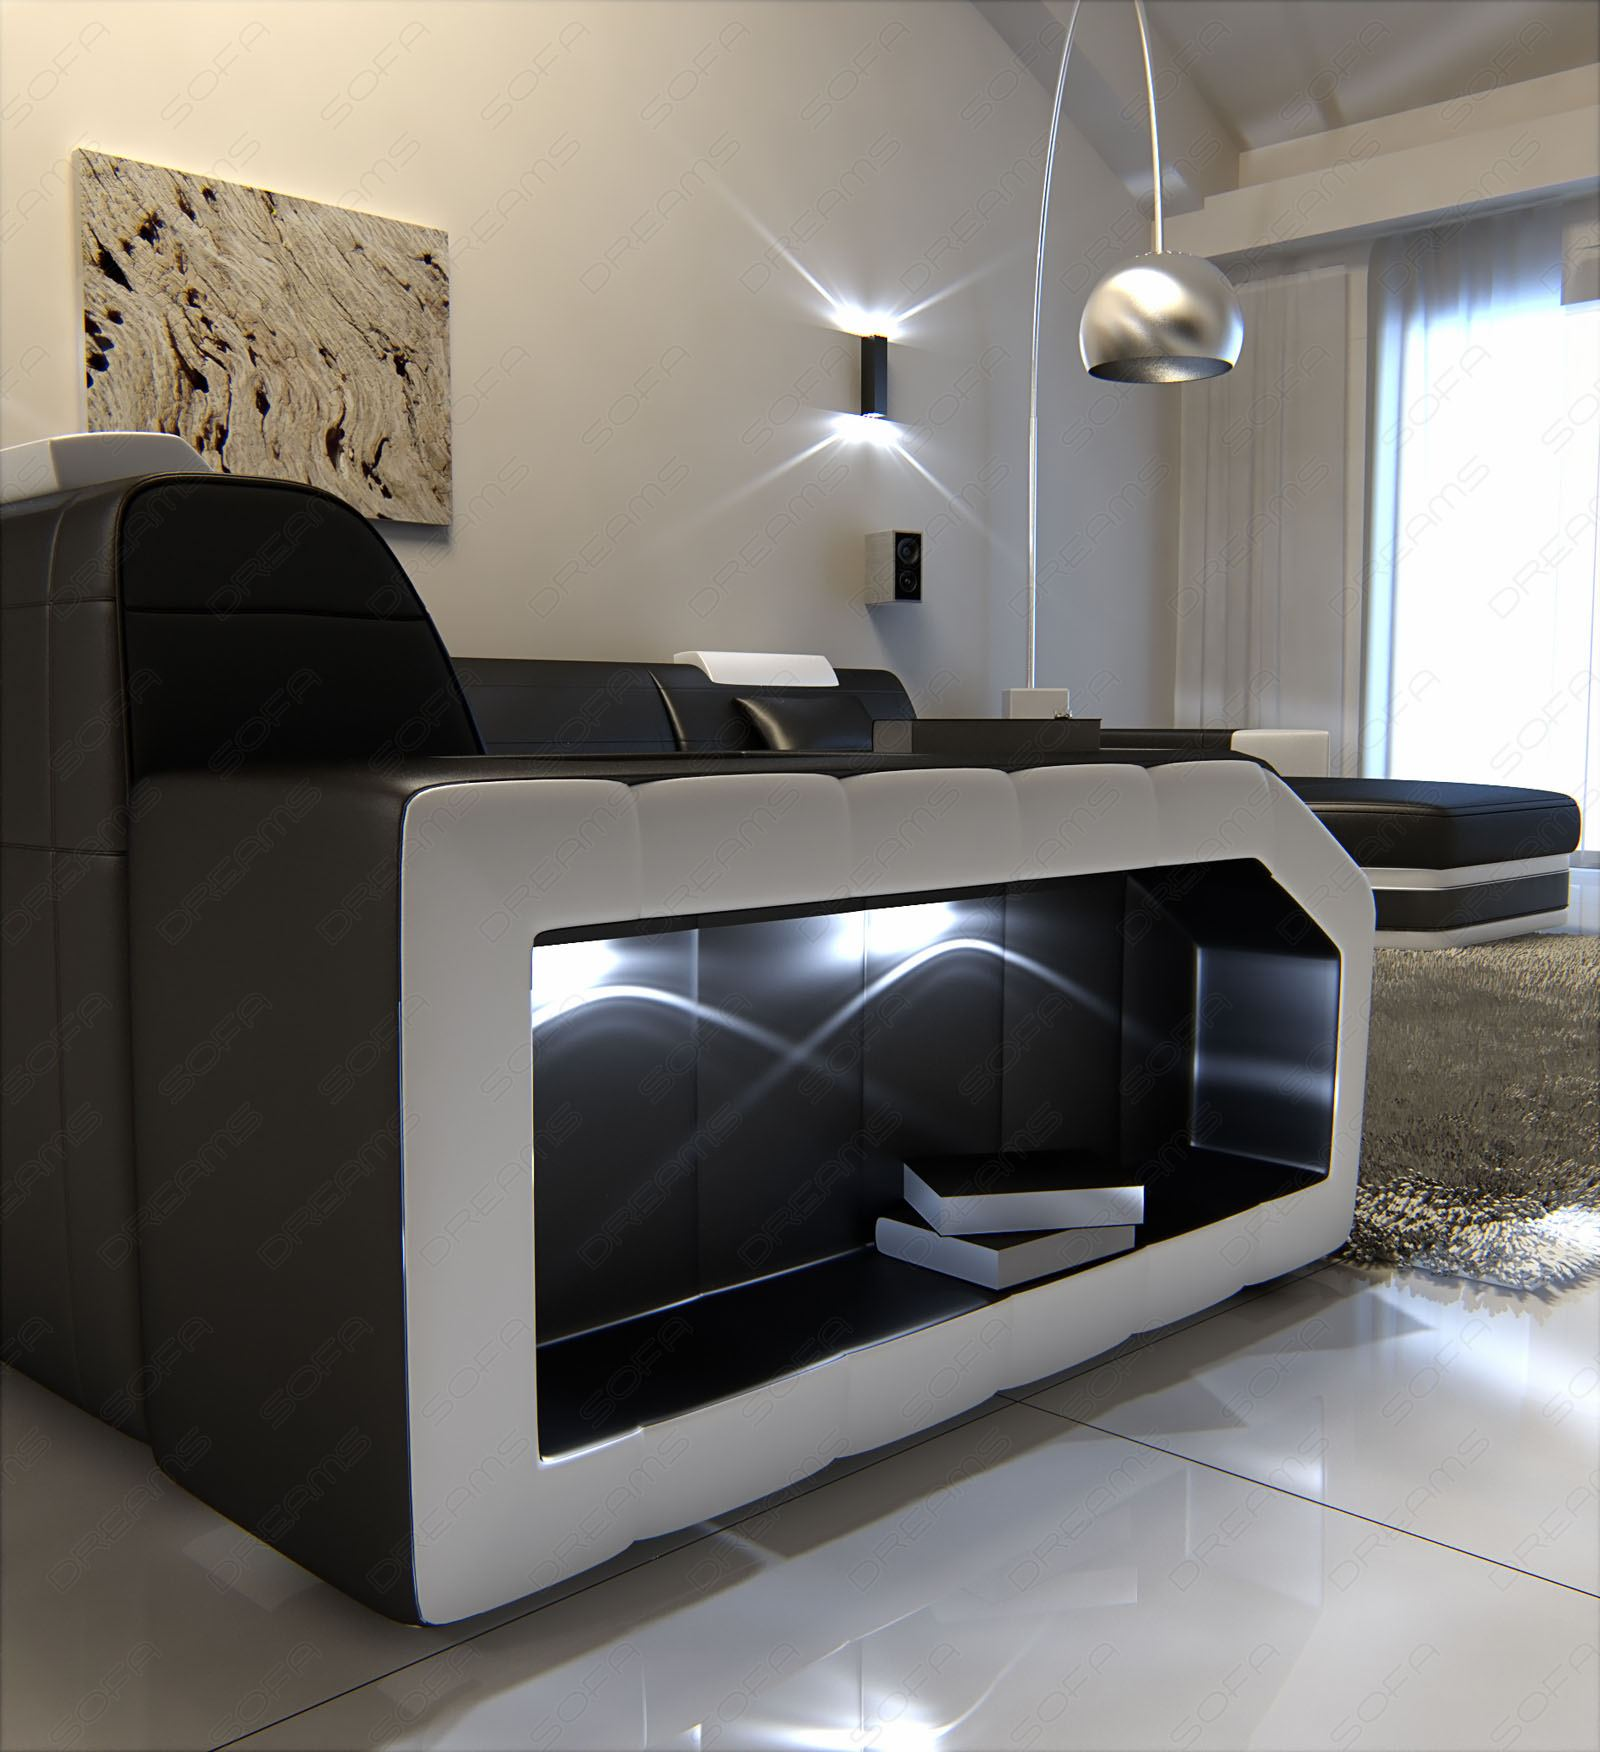 mega interior design prato leather couch with lighting black white. Black Bedroom Furniture Sets. Home Design Ideas